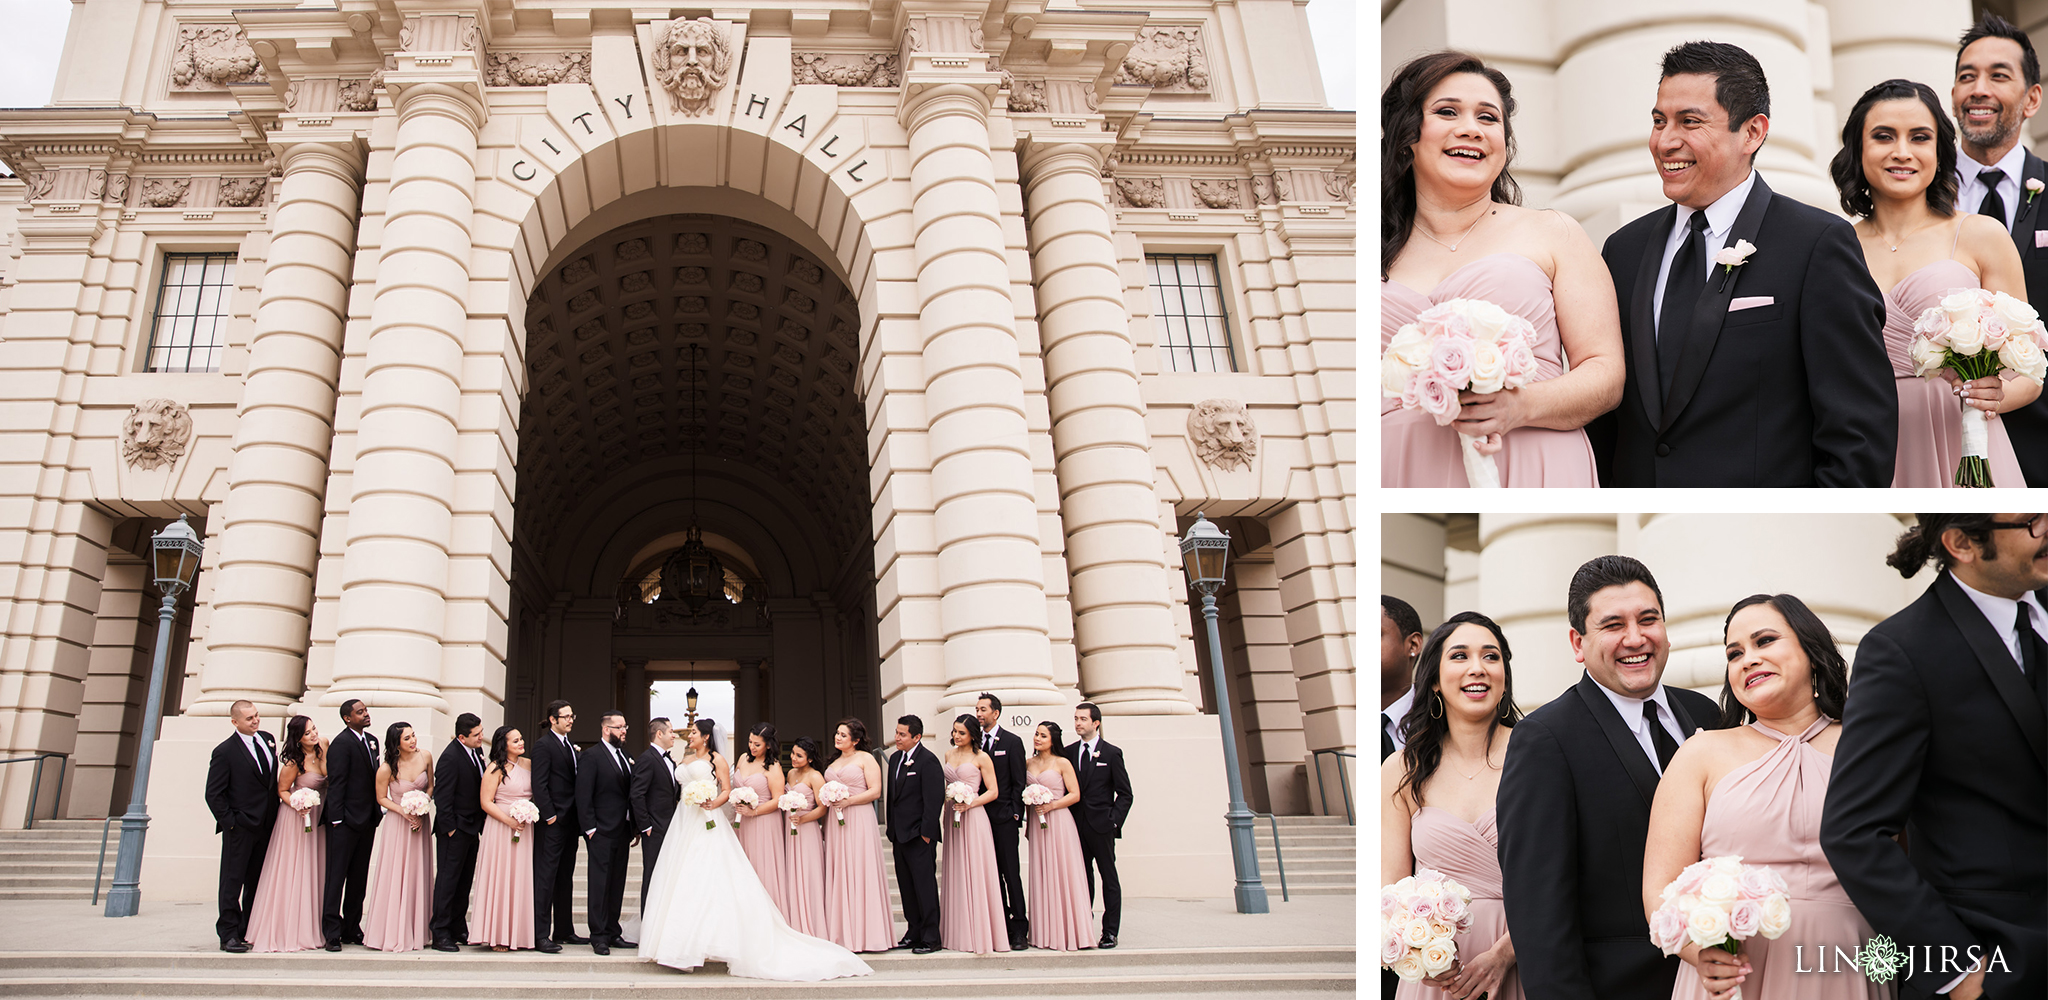 26 Pasadena City Hall Wedding Party Photography